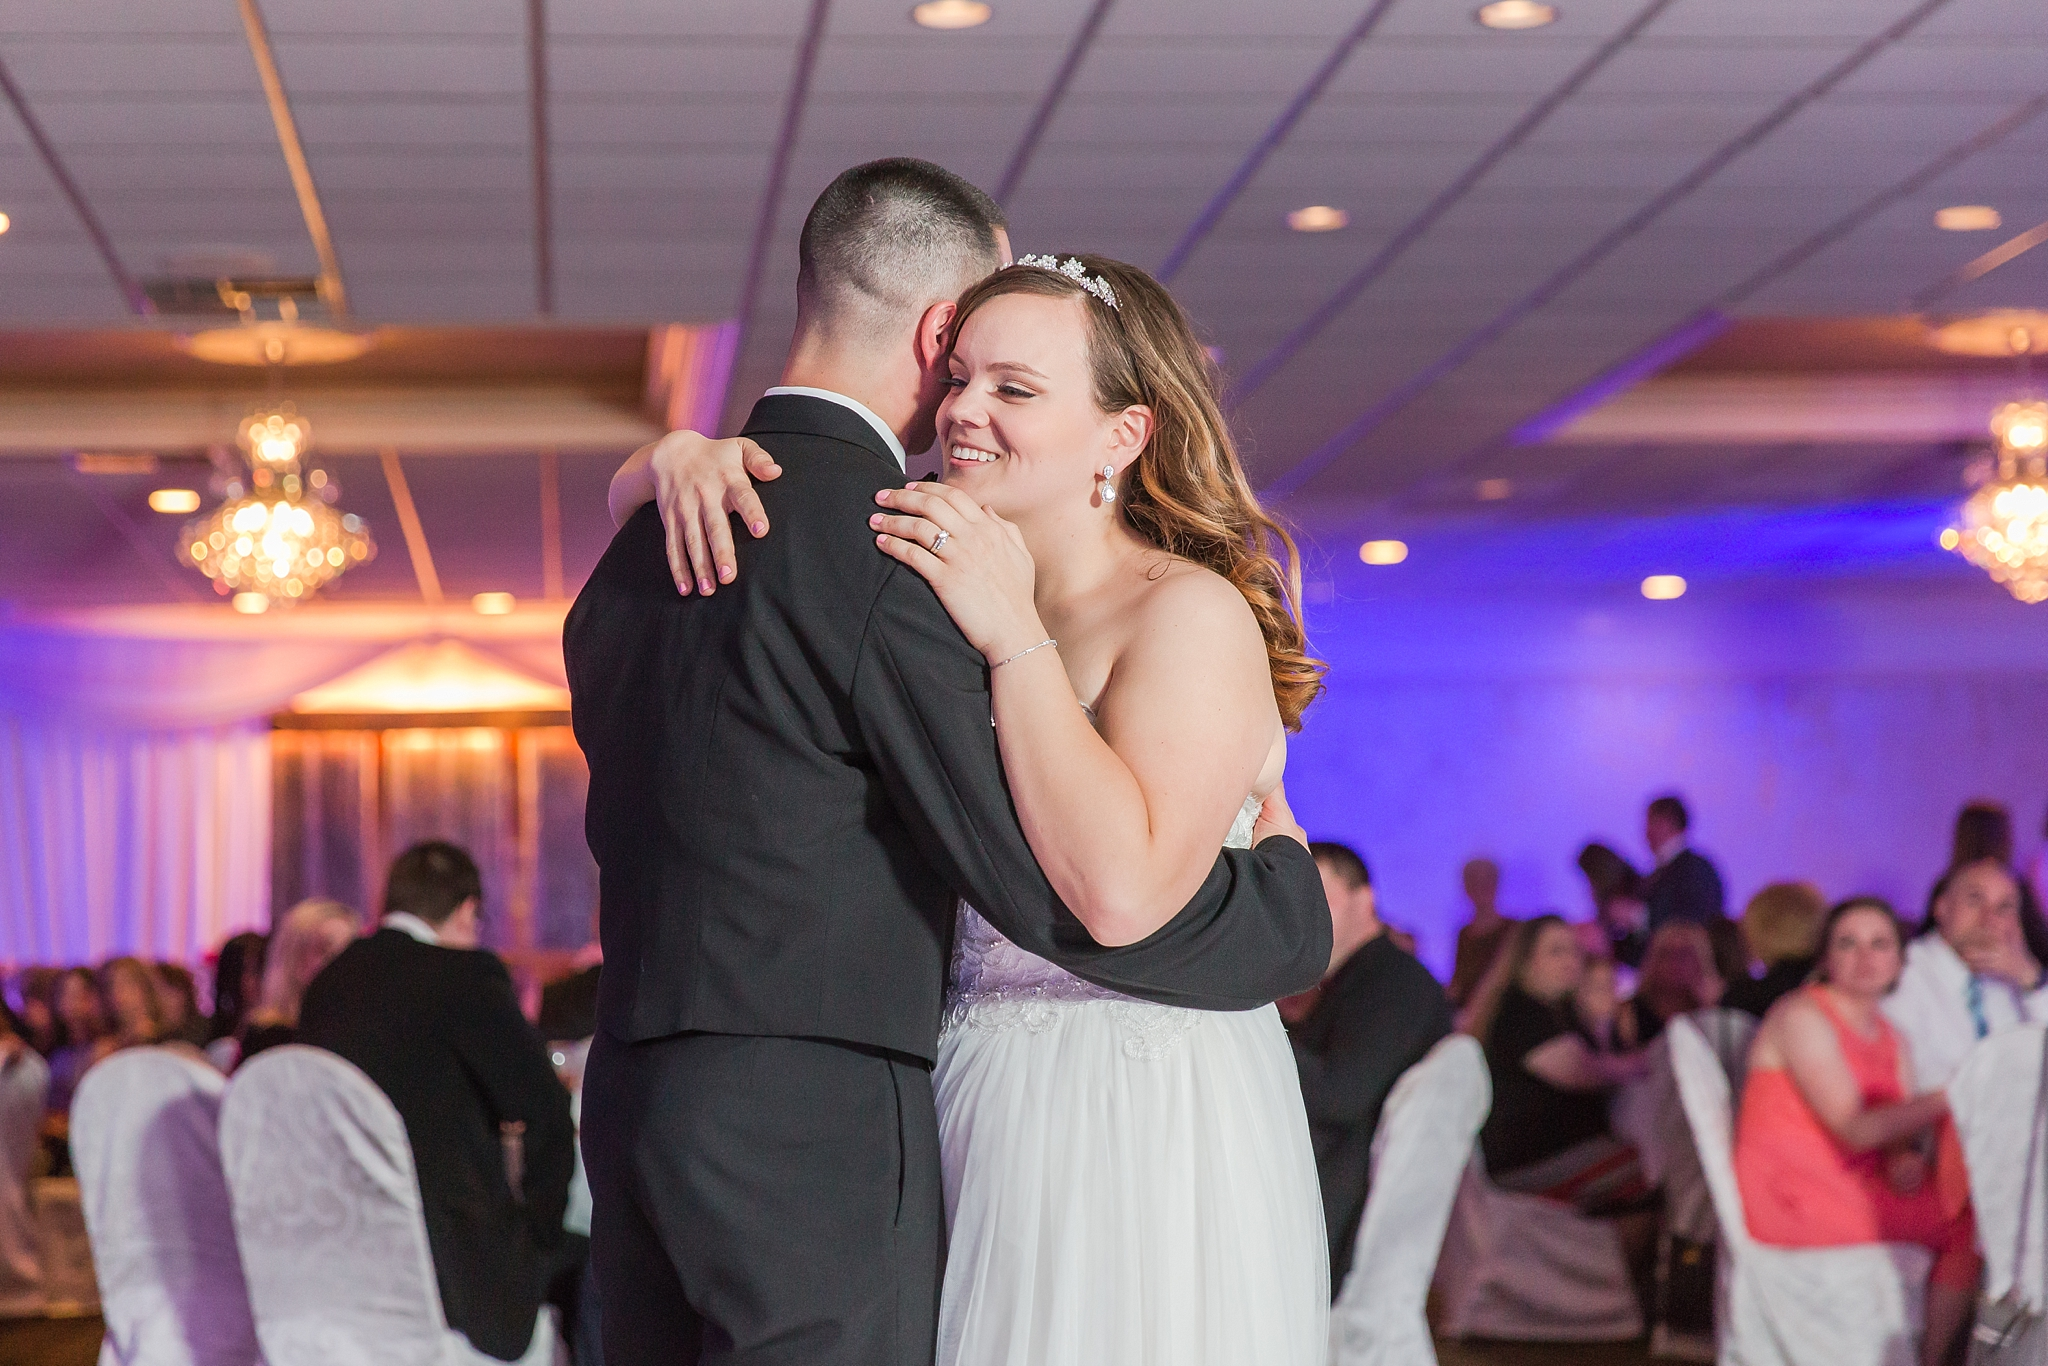 romantic-artful-candid-wedding-photos-in-st-clair-shores-at-the-white-house-wedding-chapel-by-courtney-carolyn-photography_0078.jpg